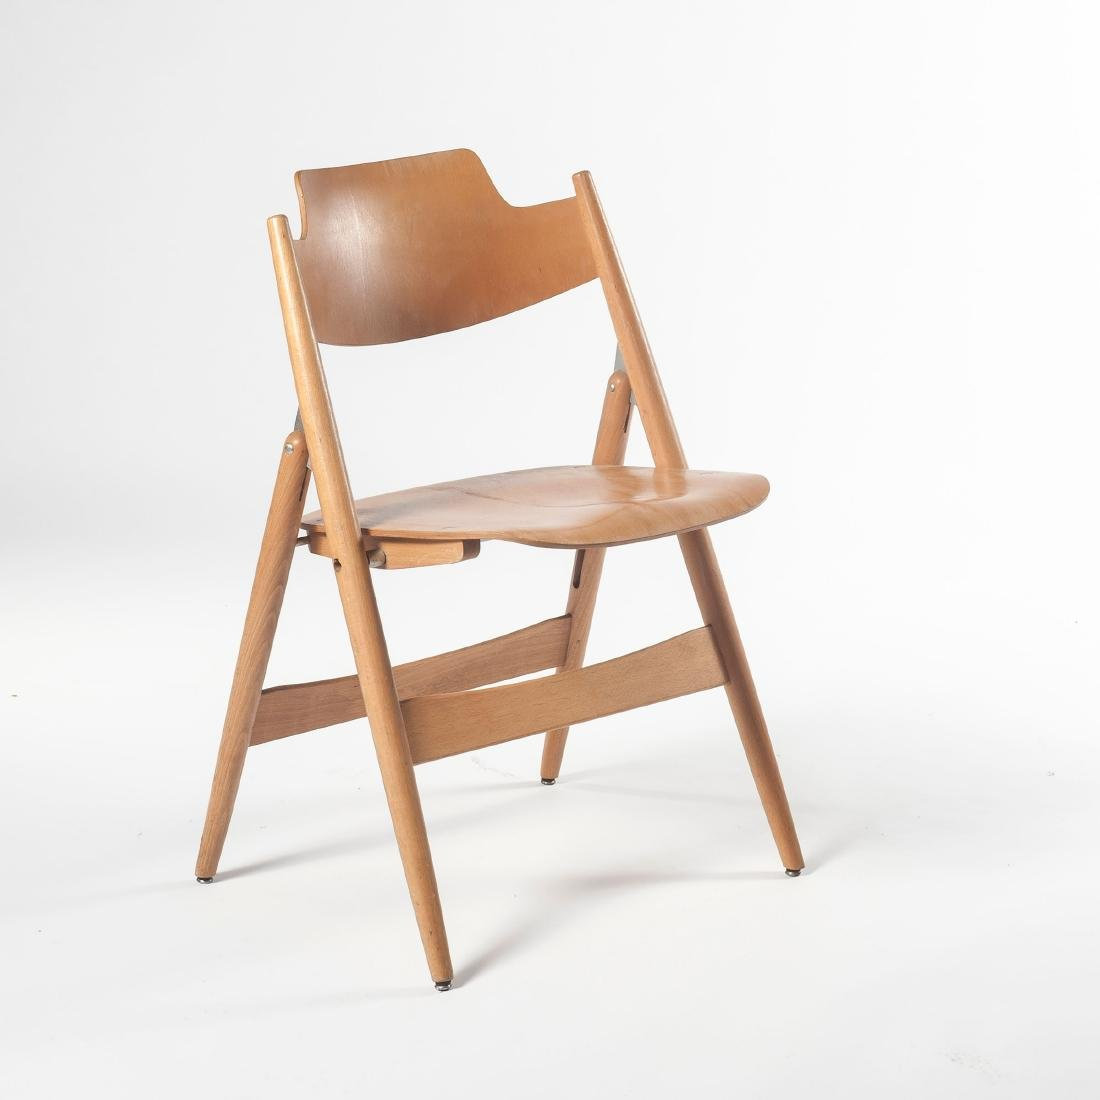 Six 'SE 18' folding chairs, 1953 - 6